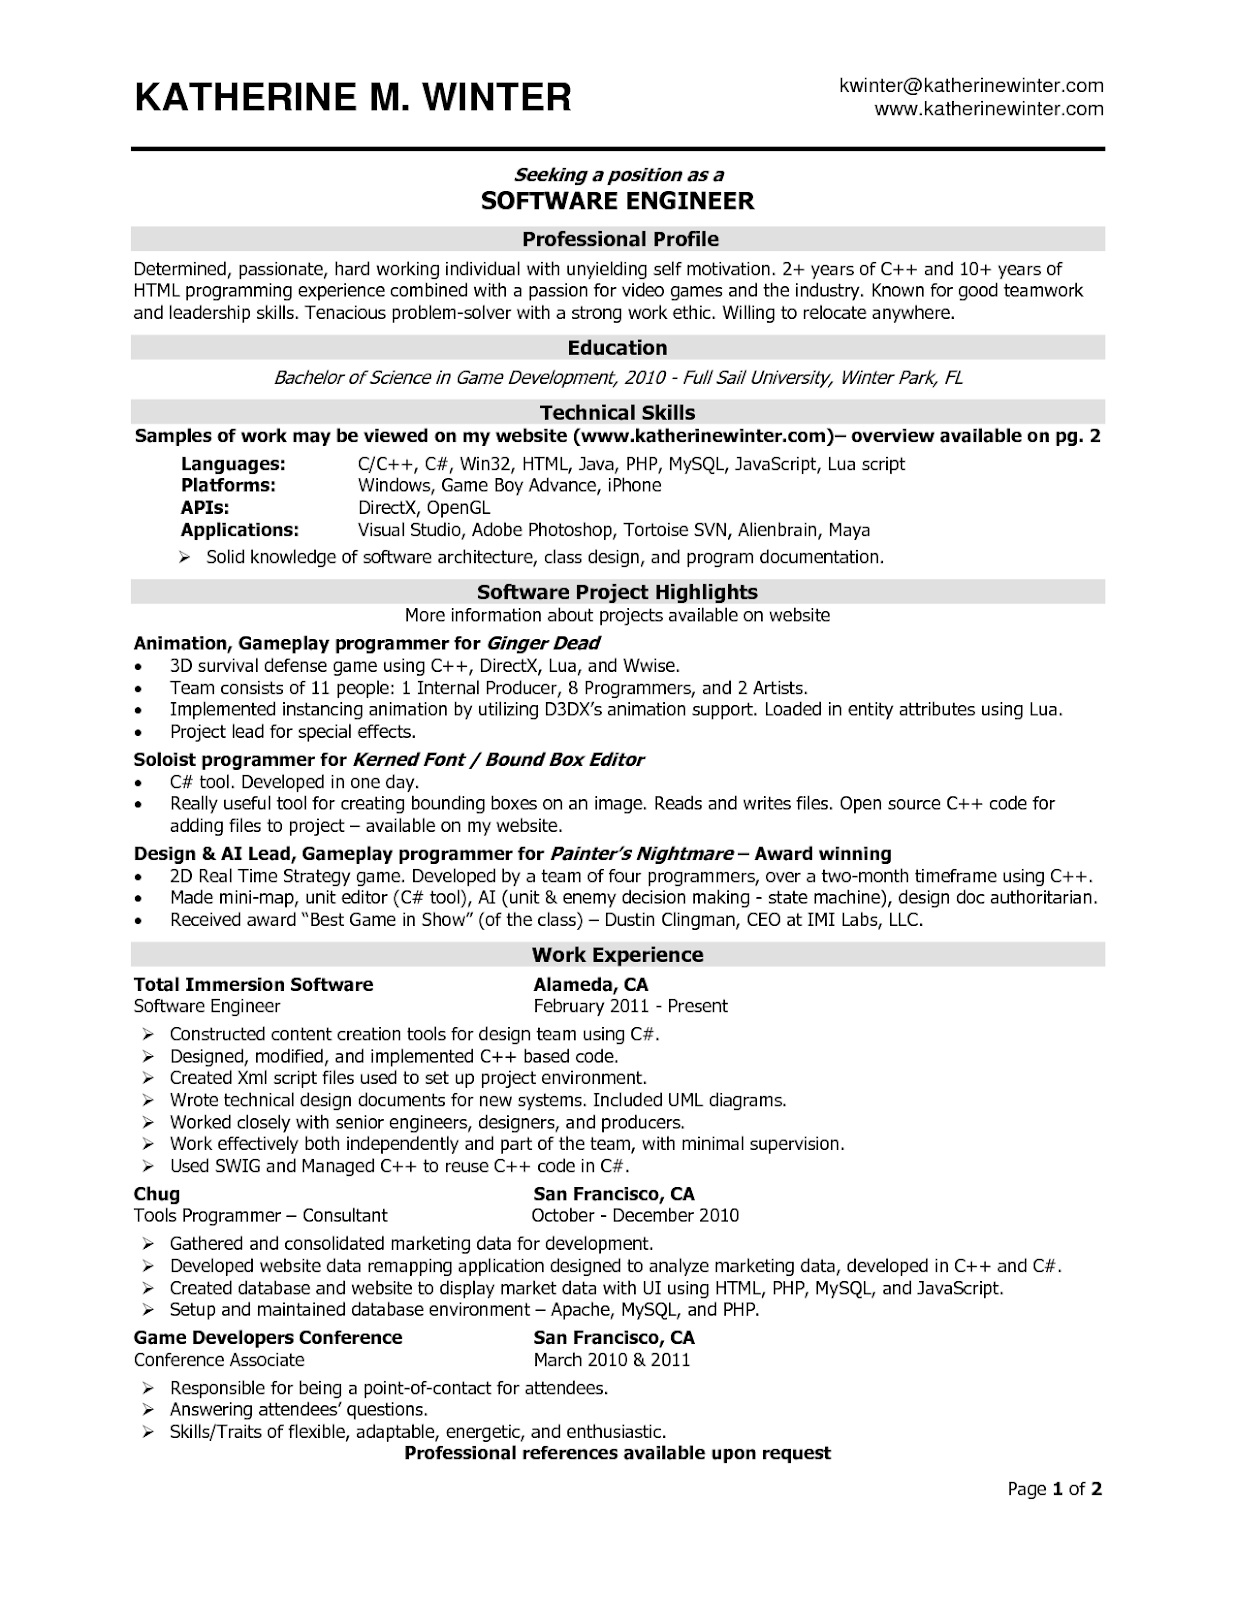 software engineer sample resume software engineer resume samples sample resumes software engineer sample resume 1214 network administrator resume sample - Cisco Network Engineer Sample Resume